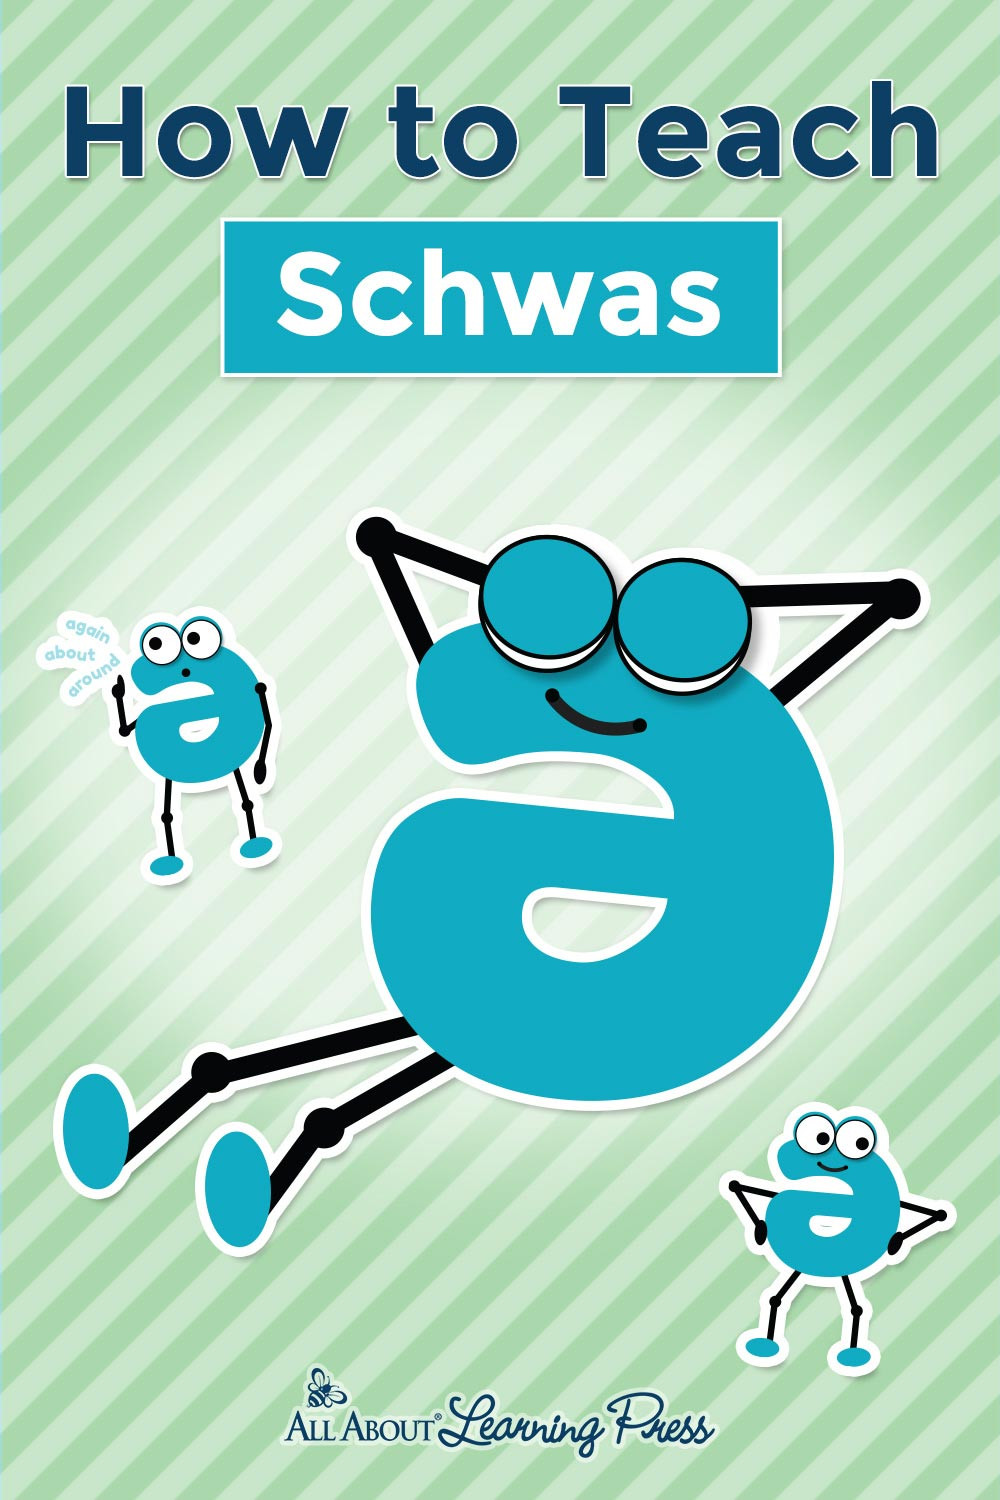 Schwa sound Worksheets Grade 2 How to Teach Schwas Downloadable Quick Guide